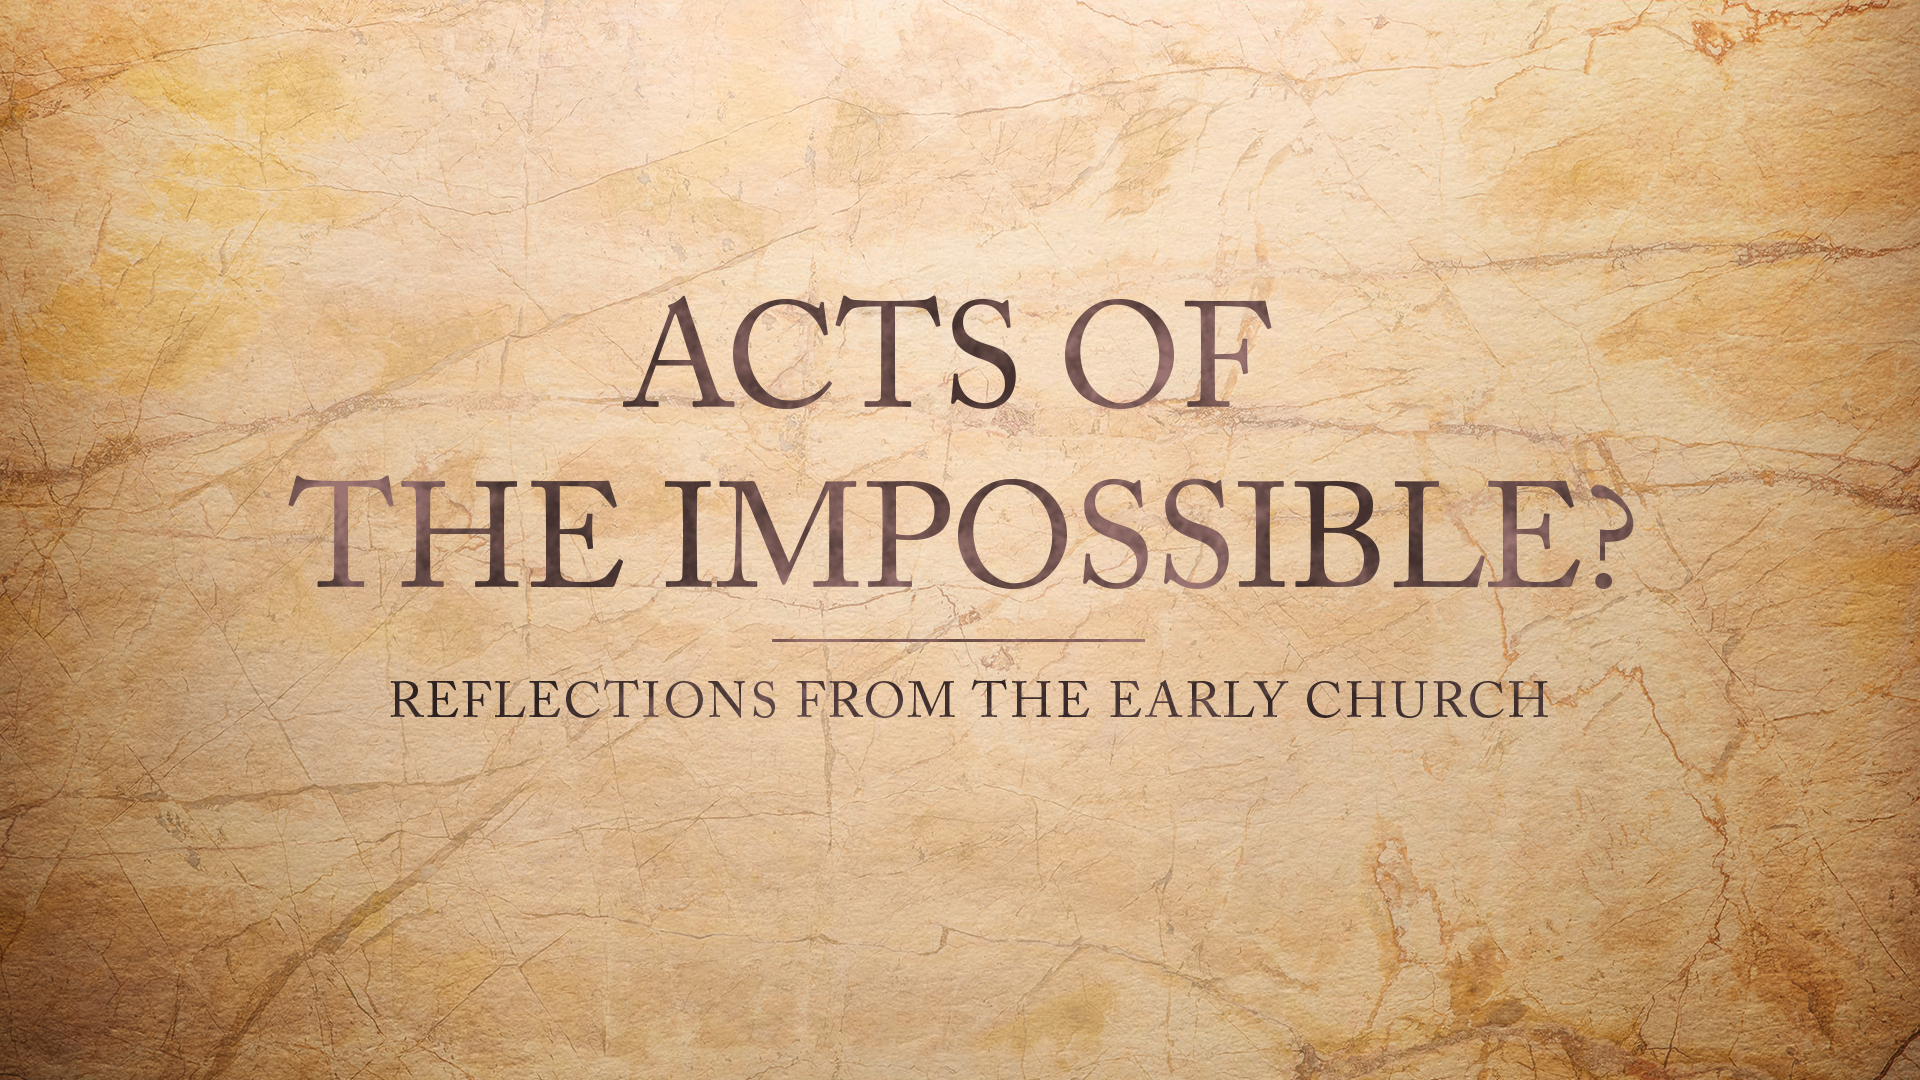 Acts of the Impossible? Don't forget.